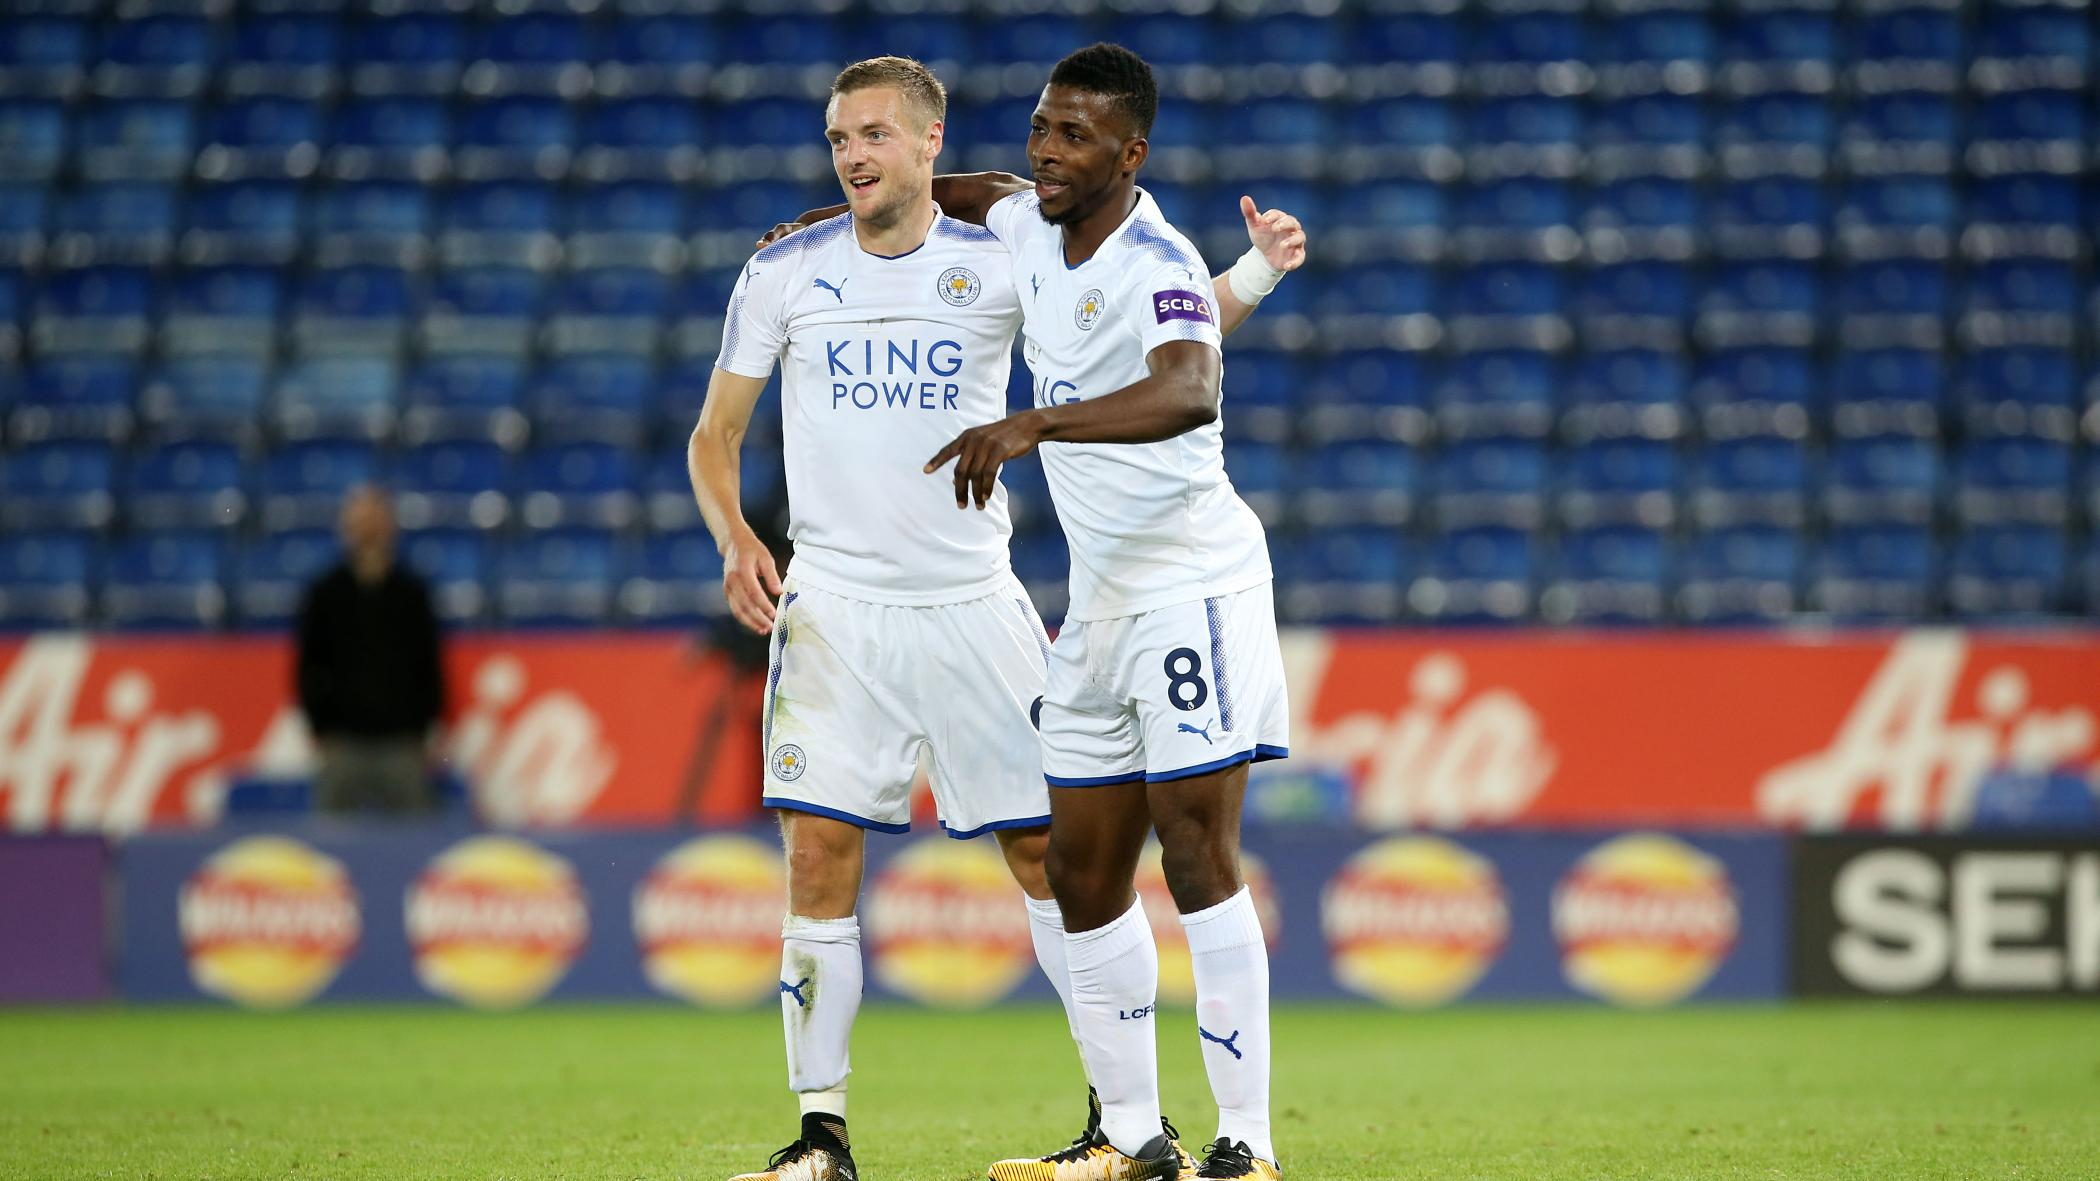 Leicester Boss Shakespeare: We Played Safe With Iheanacho Substitution Vs Monchengladbach